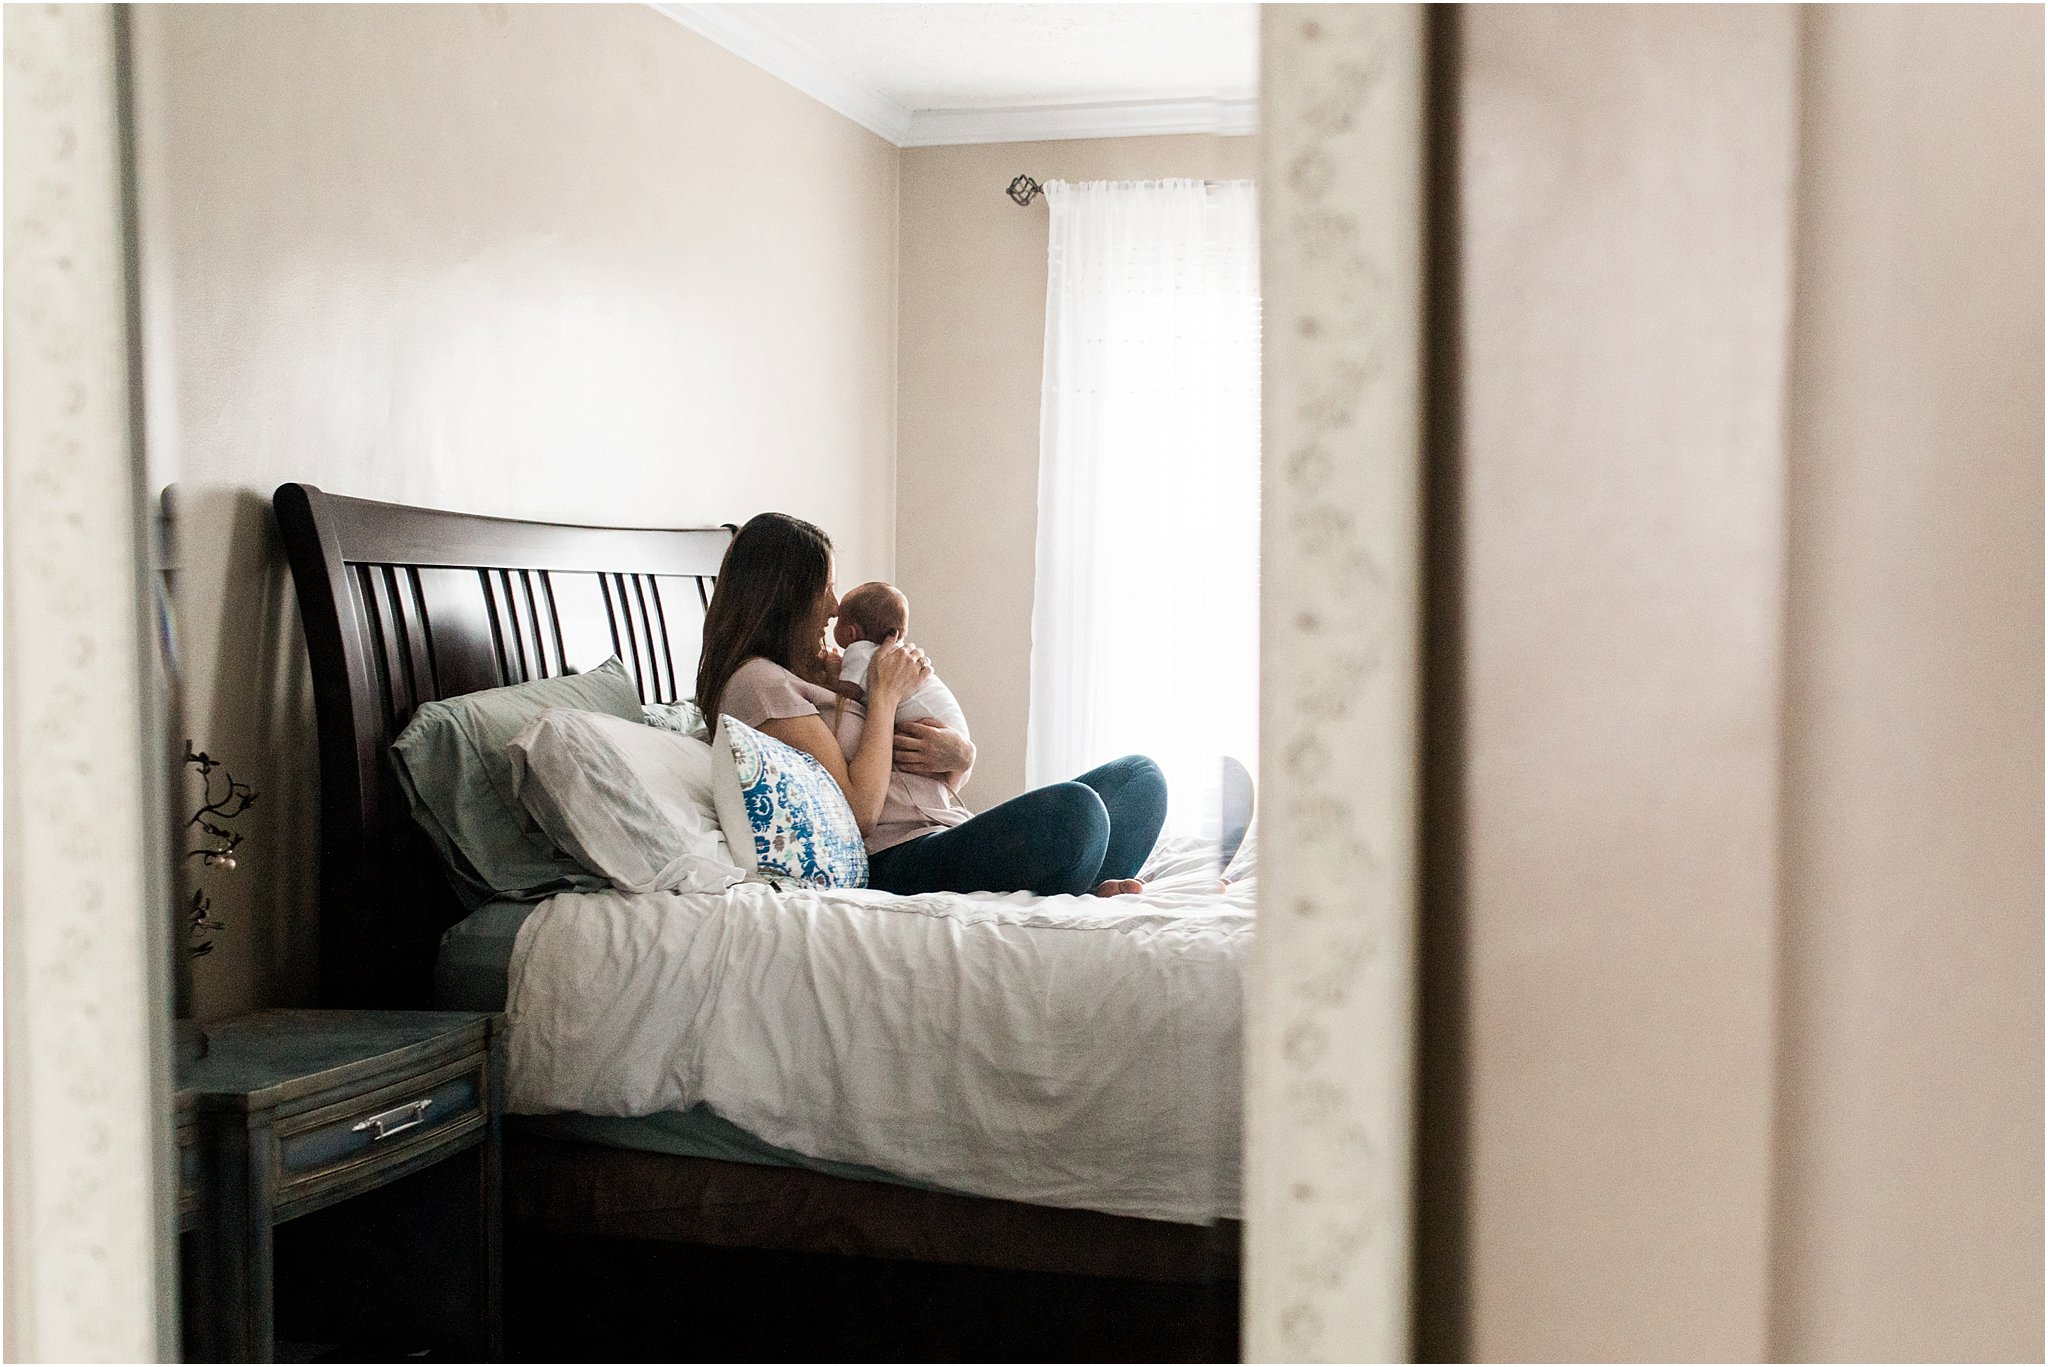 photo of new mom and baby spending quiet moment together in bedroom